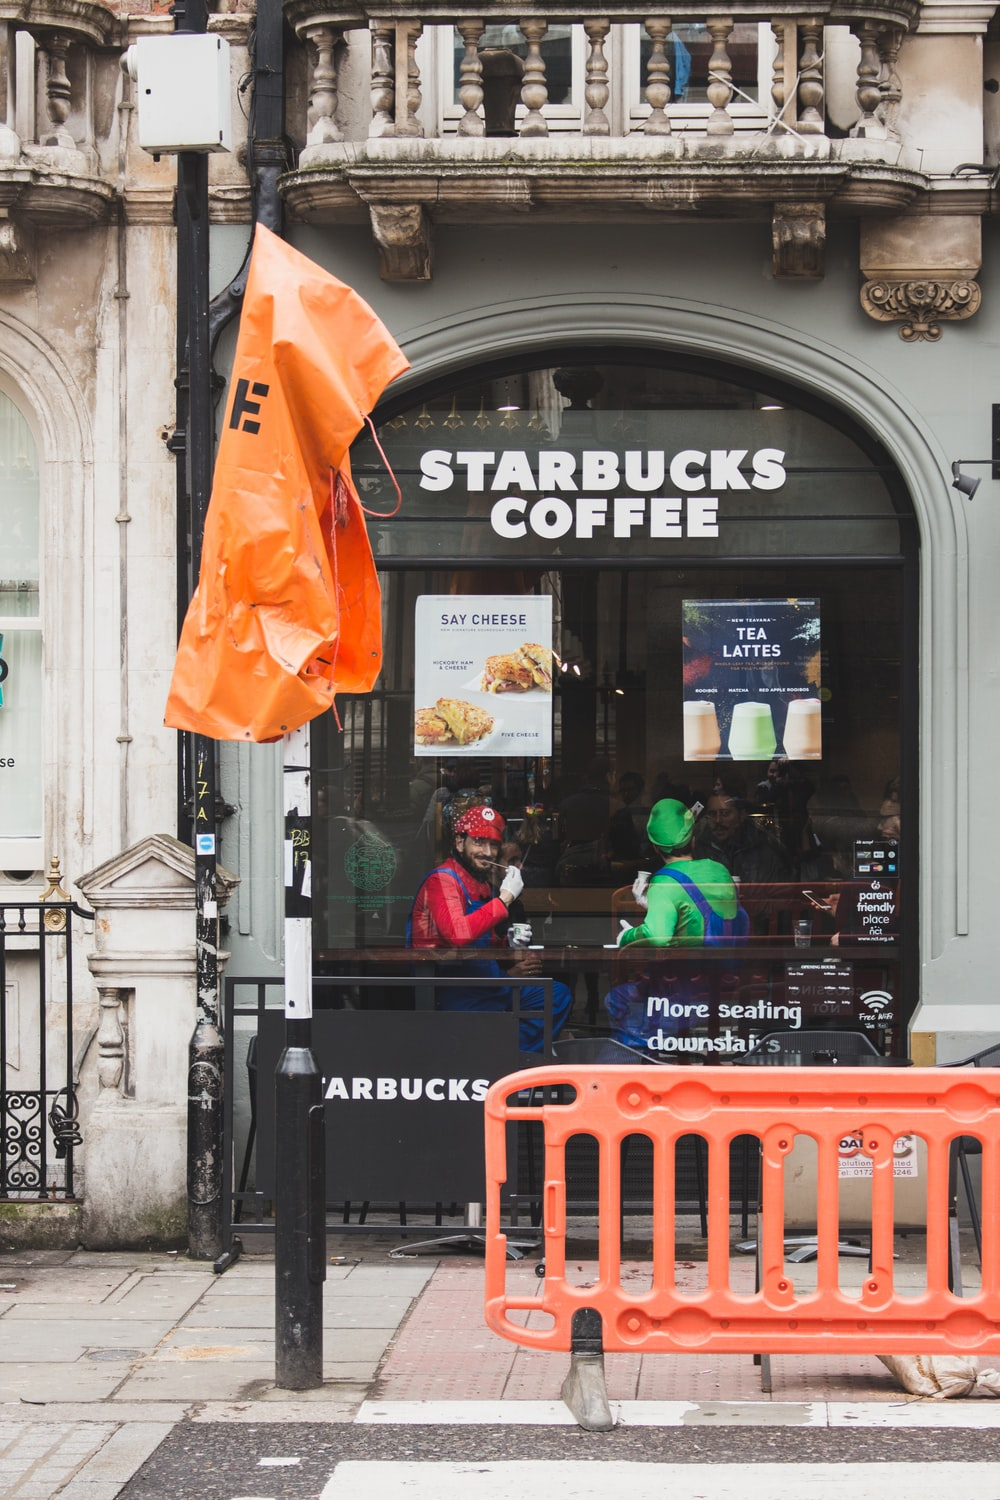 two men with Super Mario and Luigi costumes sitting inside Starbucks coffee cafe